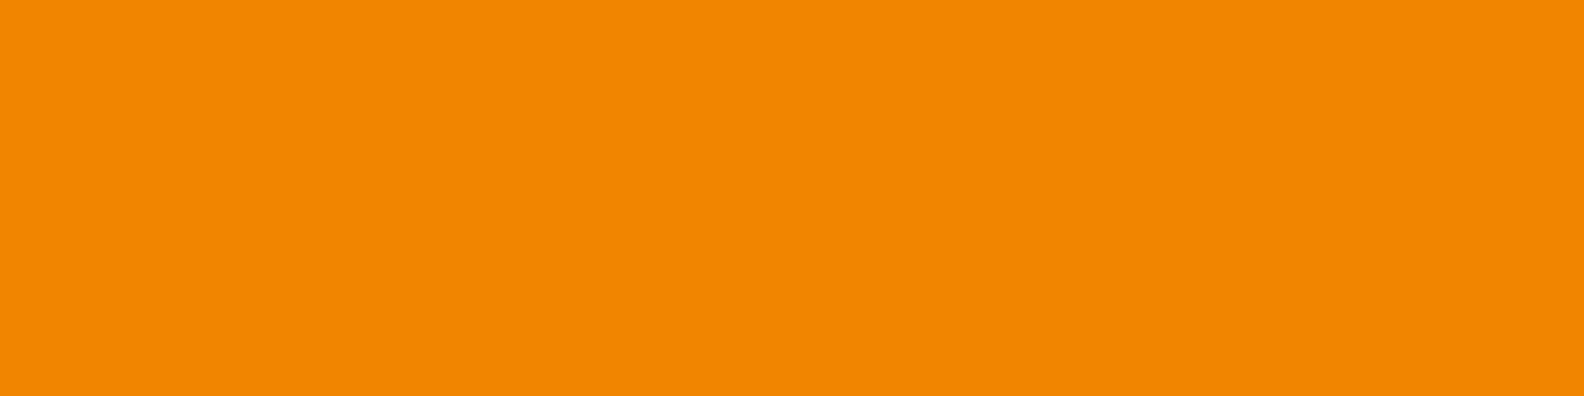 1584x396 Tangerine Solid Color Background